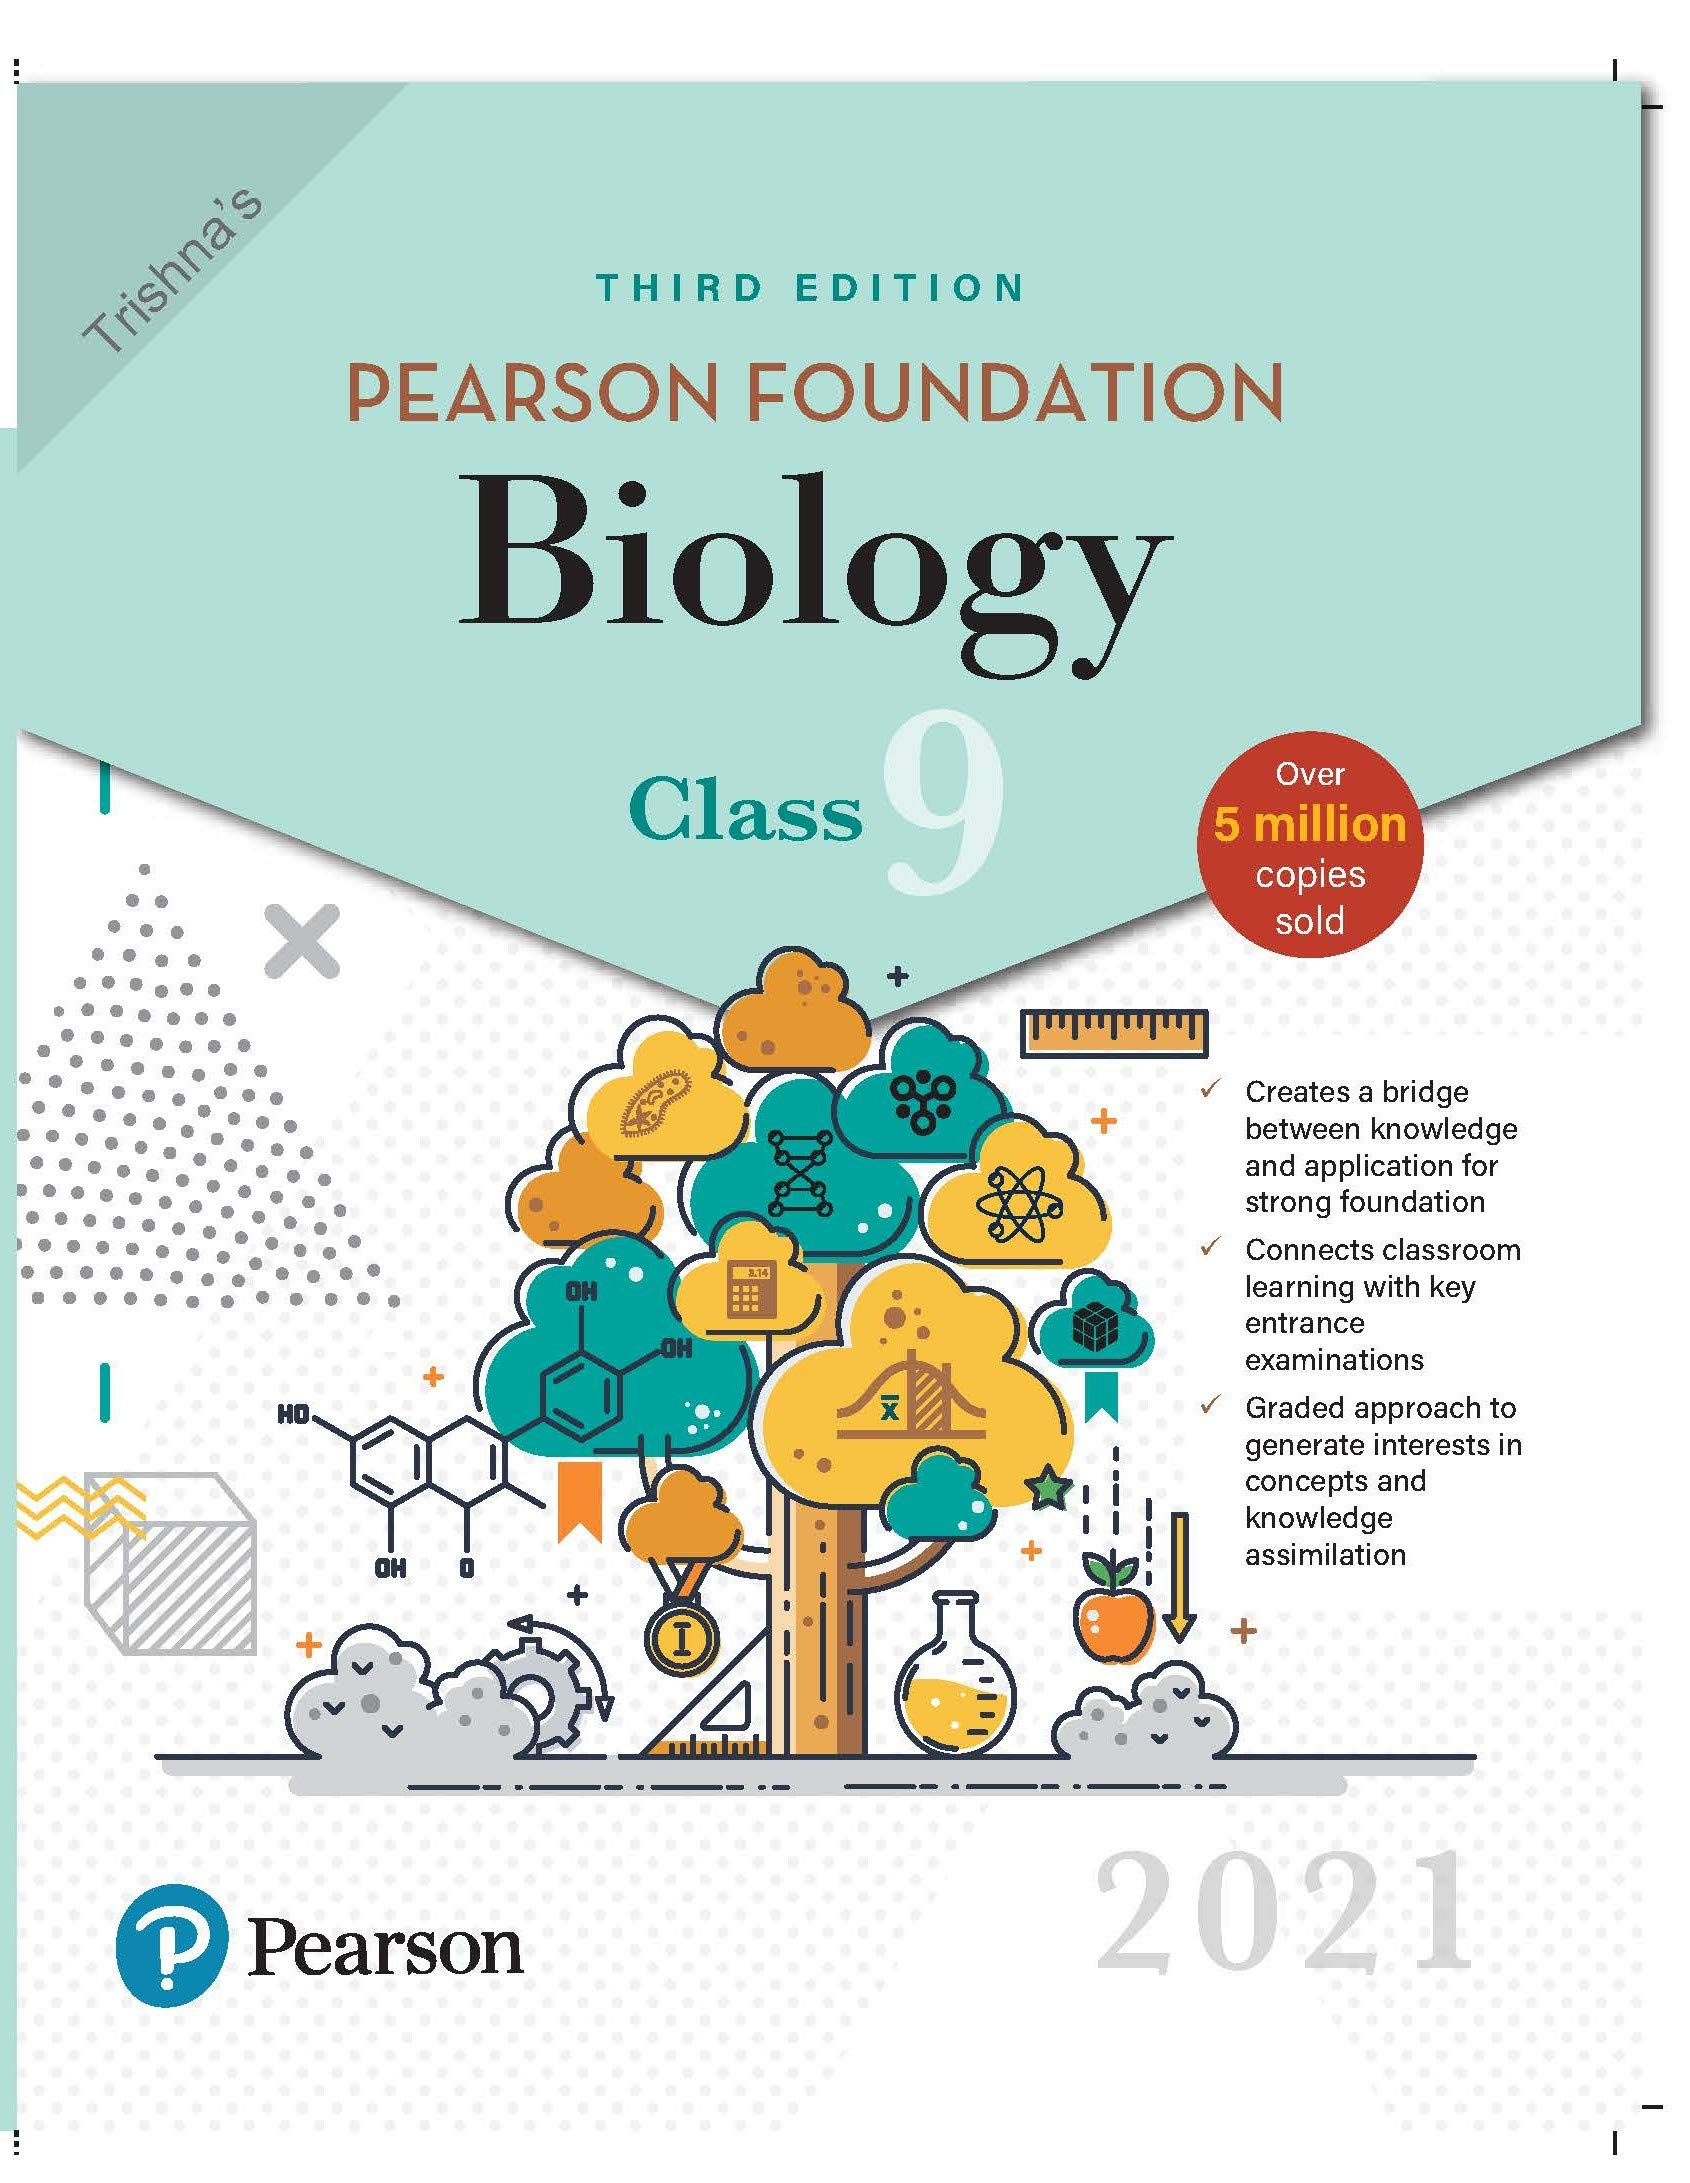 Pearson Foundation Biology | Class 9| 2021 Edition| By Pearson